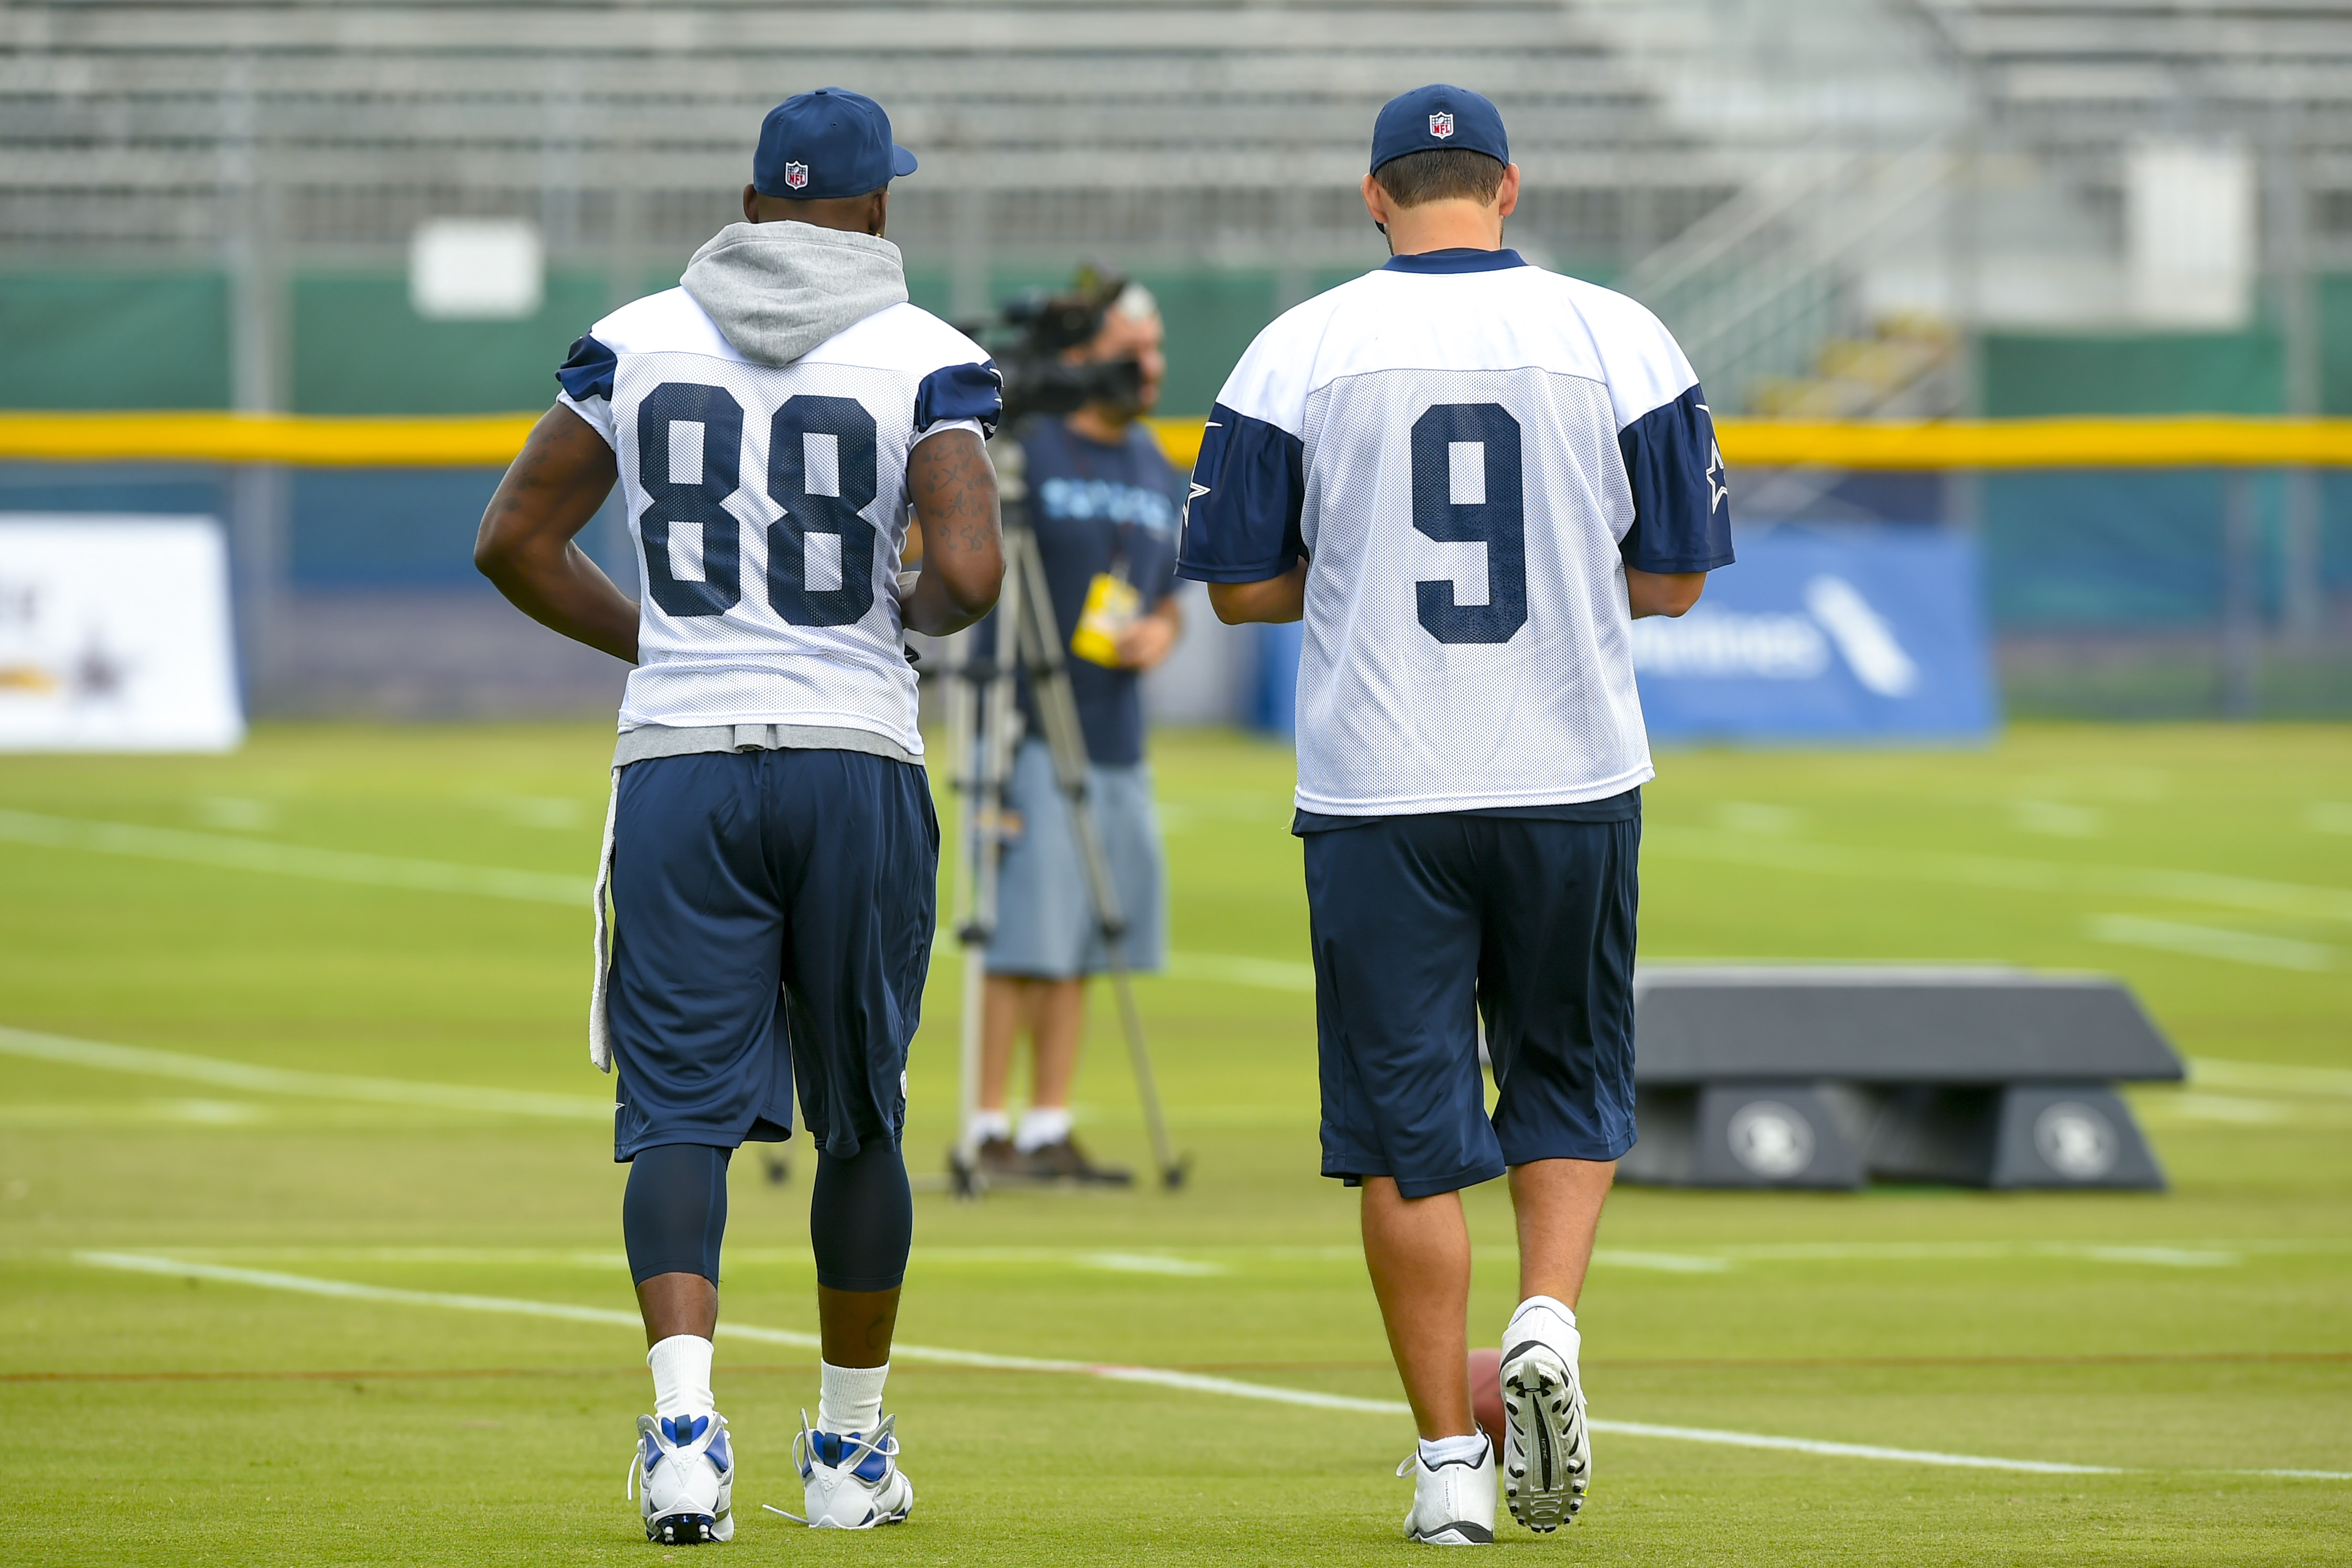 Dallas Cowboys wide receiver Dez Bryant (88) and quarterback Tony Romo (9) take the field during Dallas Cowboys NFL football training camp, Thursday, July 30, 2015, in Oxnard, Calif. (AP Photo/Gus Ruelas)